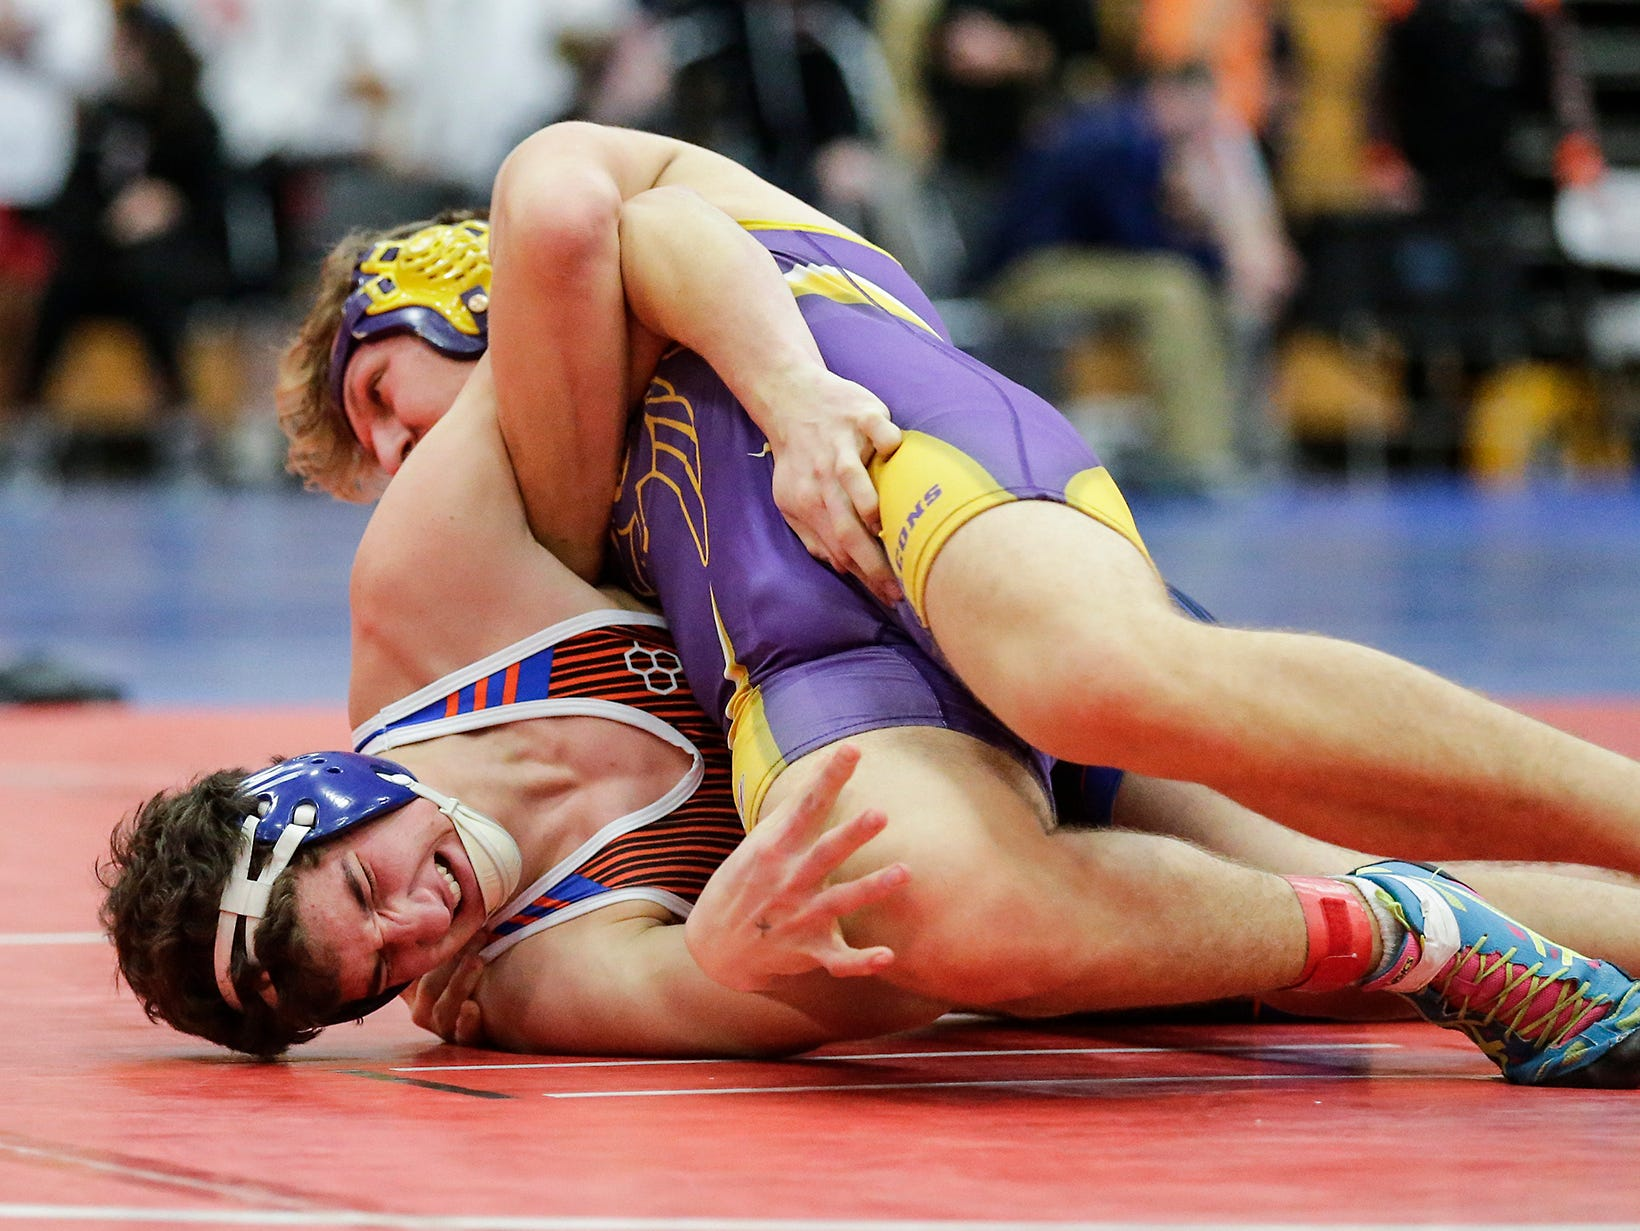 Springs/North Fond du Lac High School wrestling's Jake Koffman wrestles Connor Pierce of Sheboygan Falls High School Saturday, December 15, 2018 in the 195 pound weight class during the Fond du Lac Cardinal wrestling invitational in Fond du Lac, Wisconsin. Pierce won the match by a pin. Doug Raflik/USA TODAY NETWORK-Wisconsin